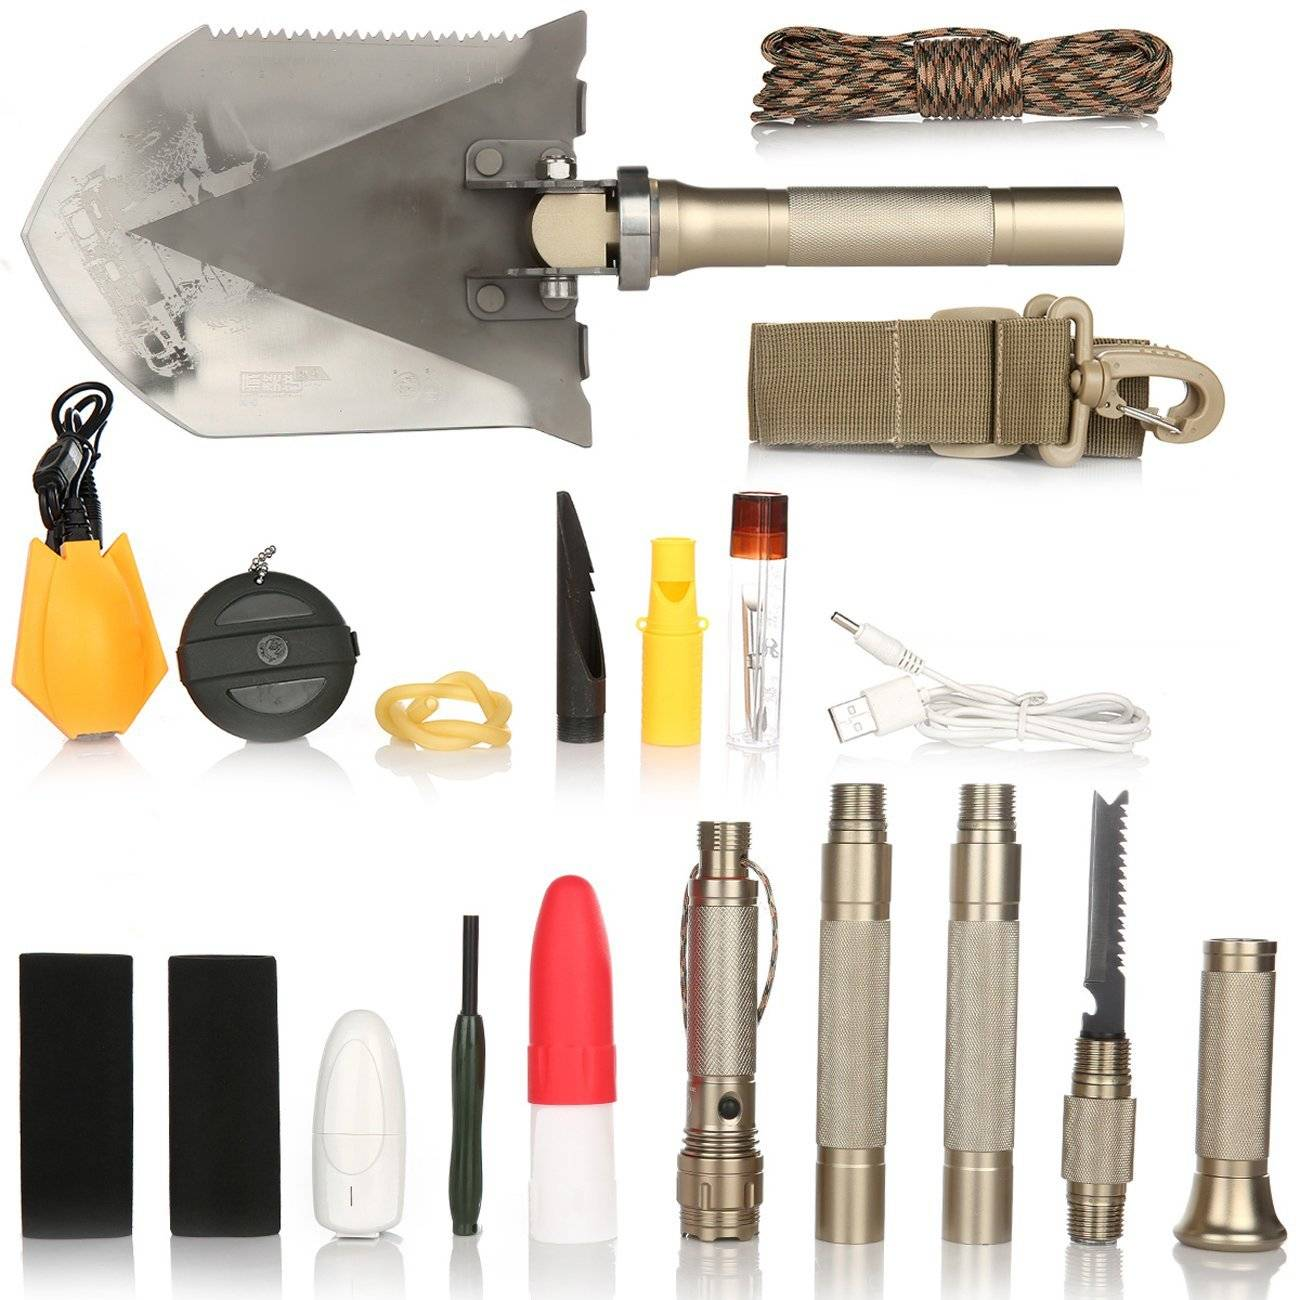 Outdoor Camping And Hiking Multifunctional Surviavl Shovel With More Than 30 Functions